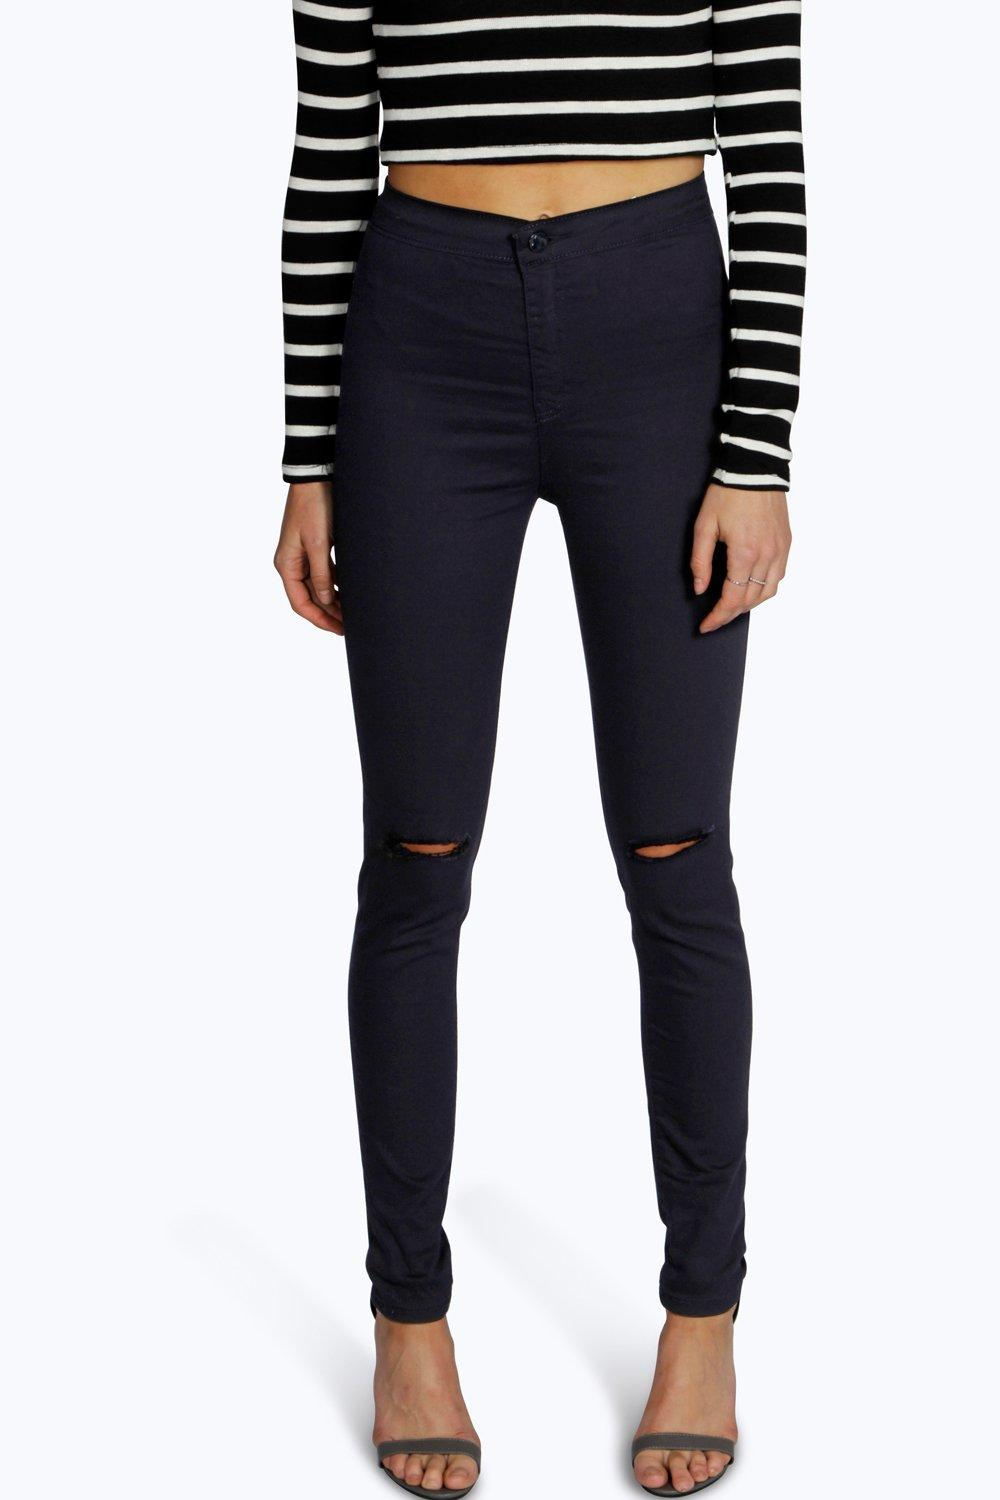 Ripped Knee High Waist Skinny Jeans navy